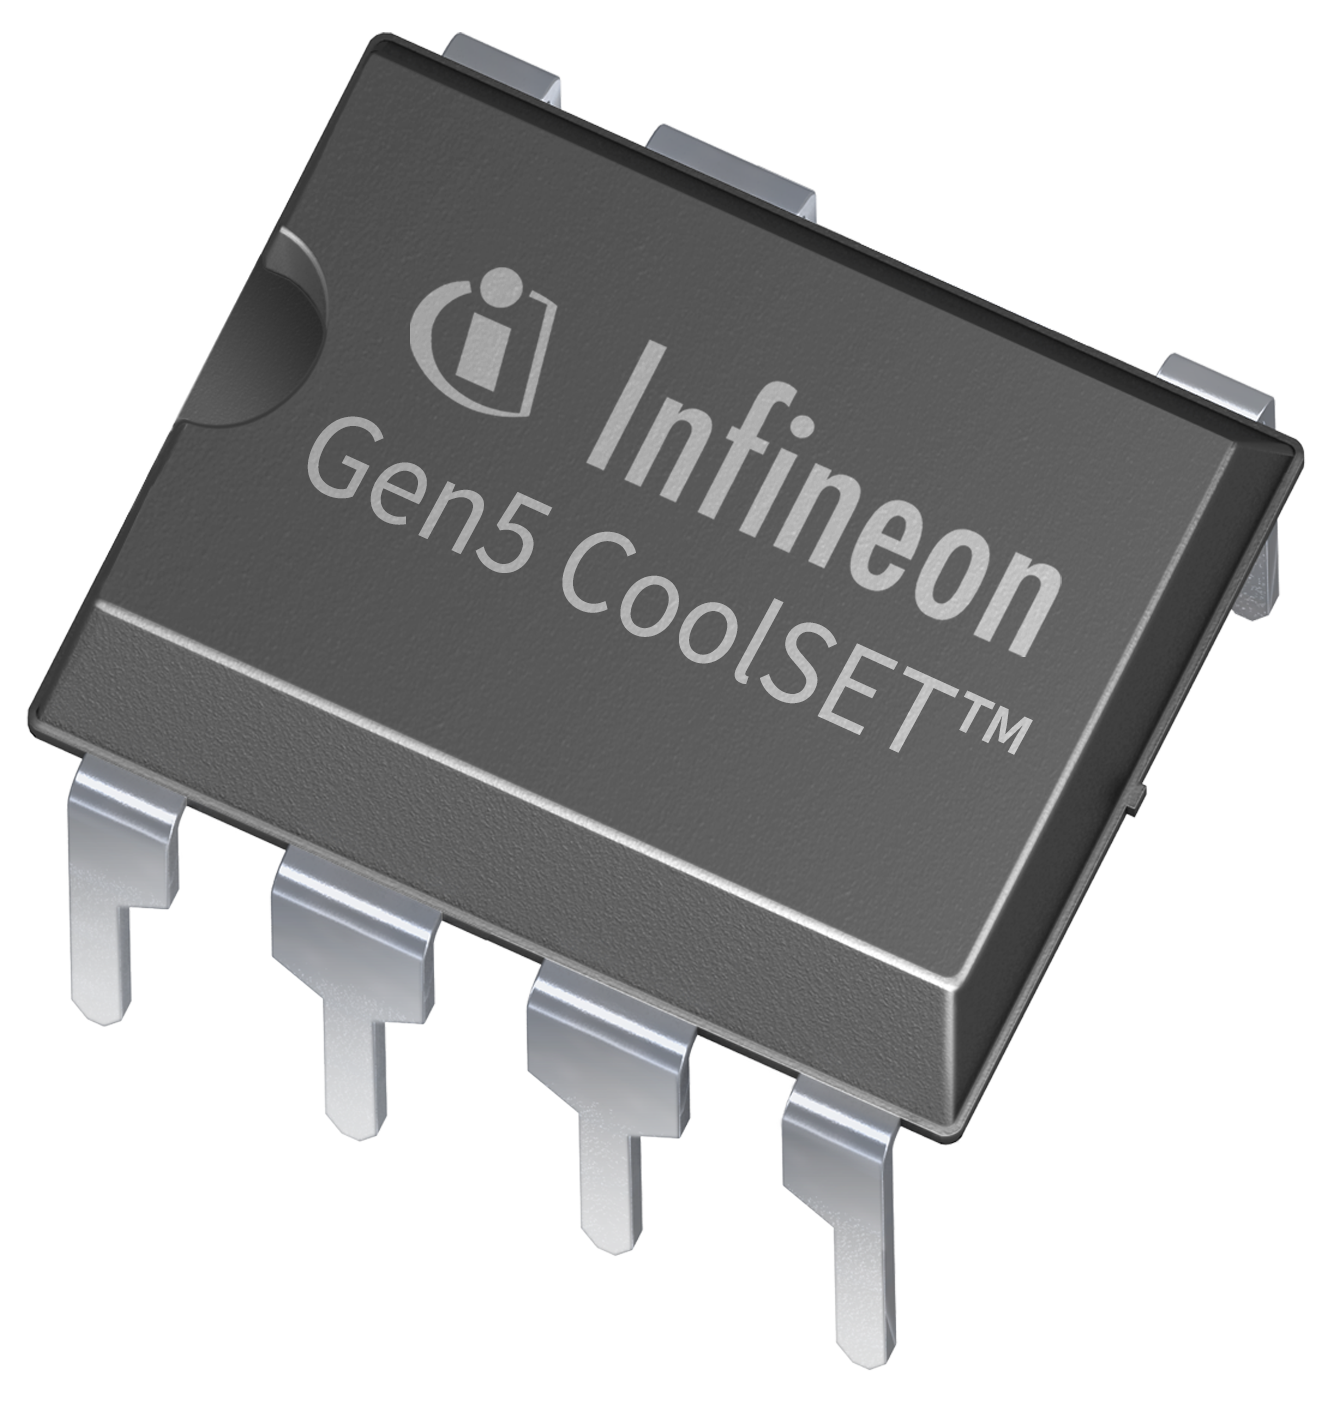 Infineon 5th Generation Pwm Controller Fixed Frequency Flyback Electronic Device And Circuit Generator Coolset